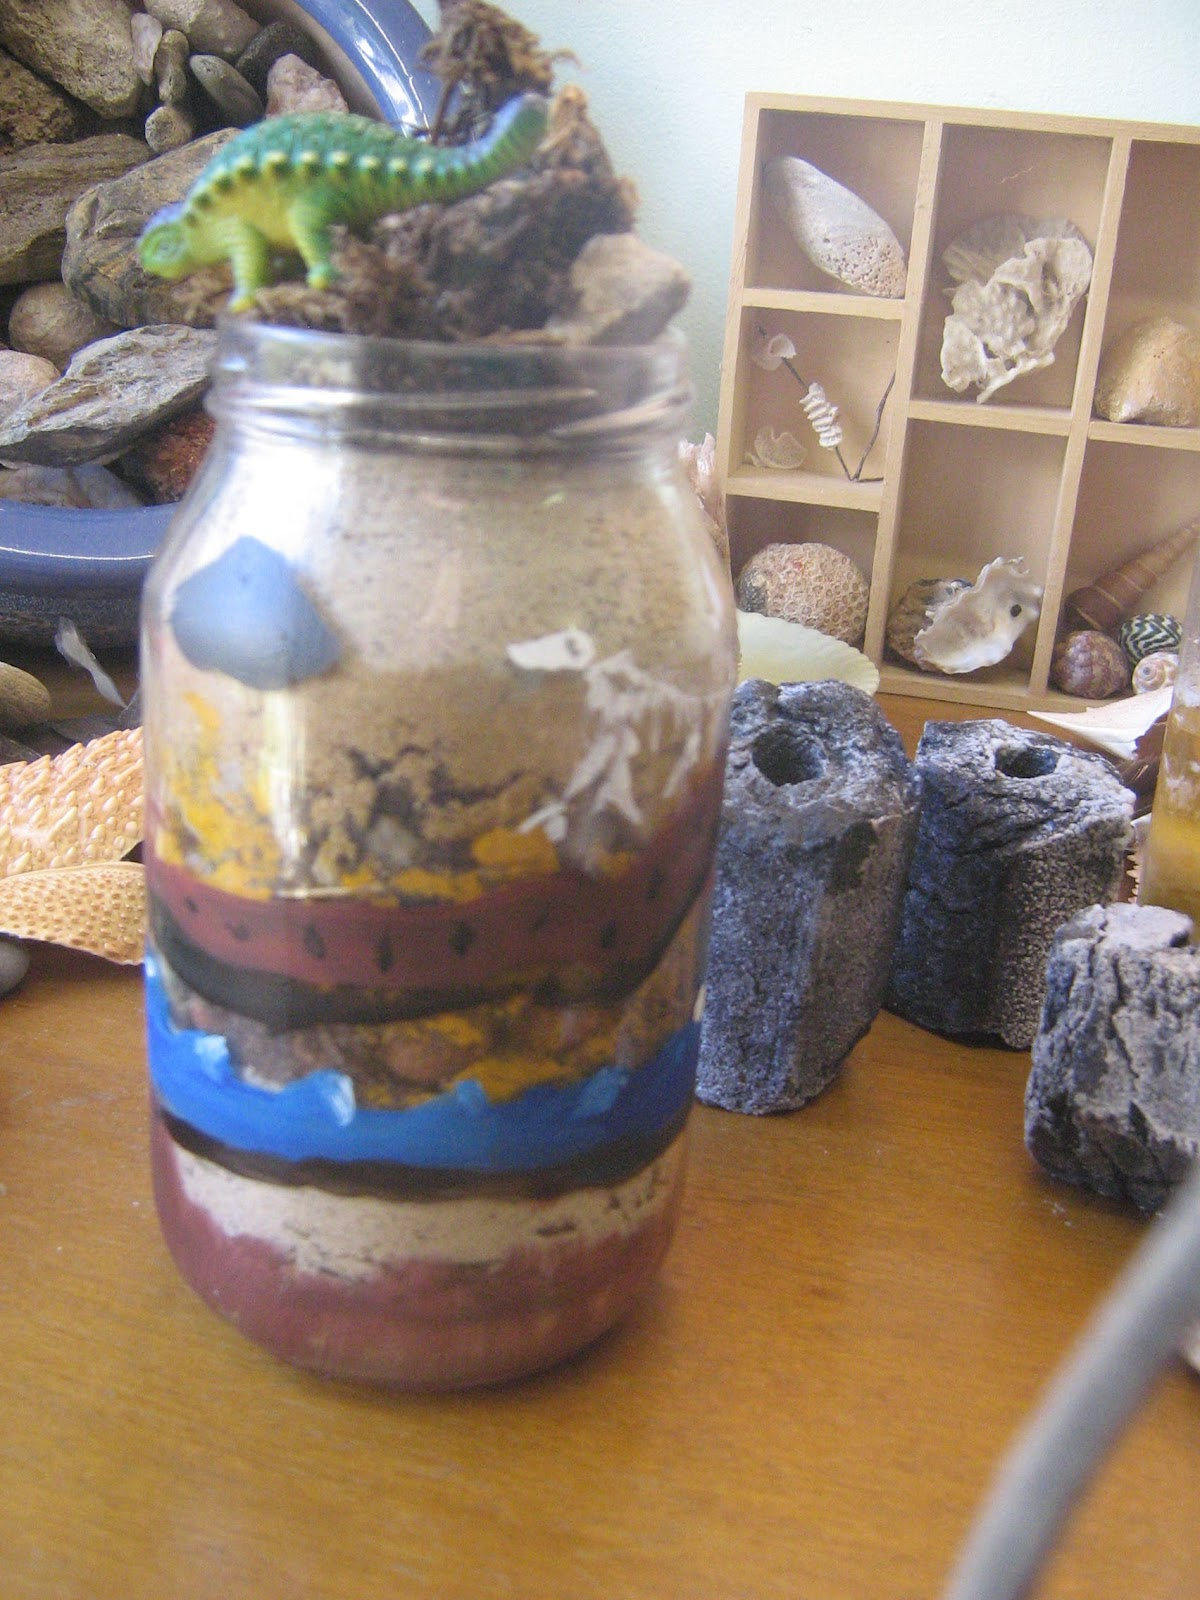 layers of soil in a jar - photo #15